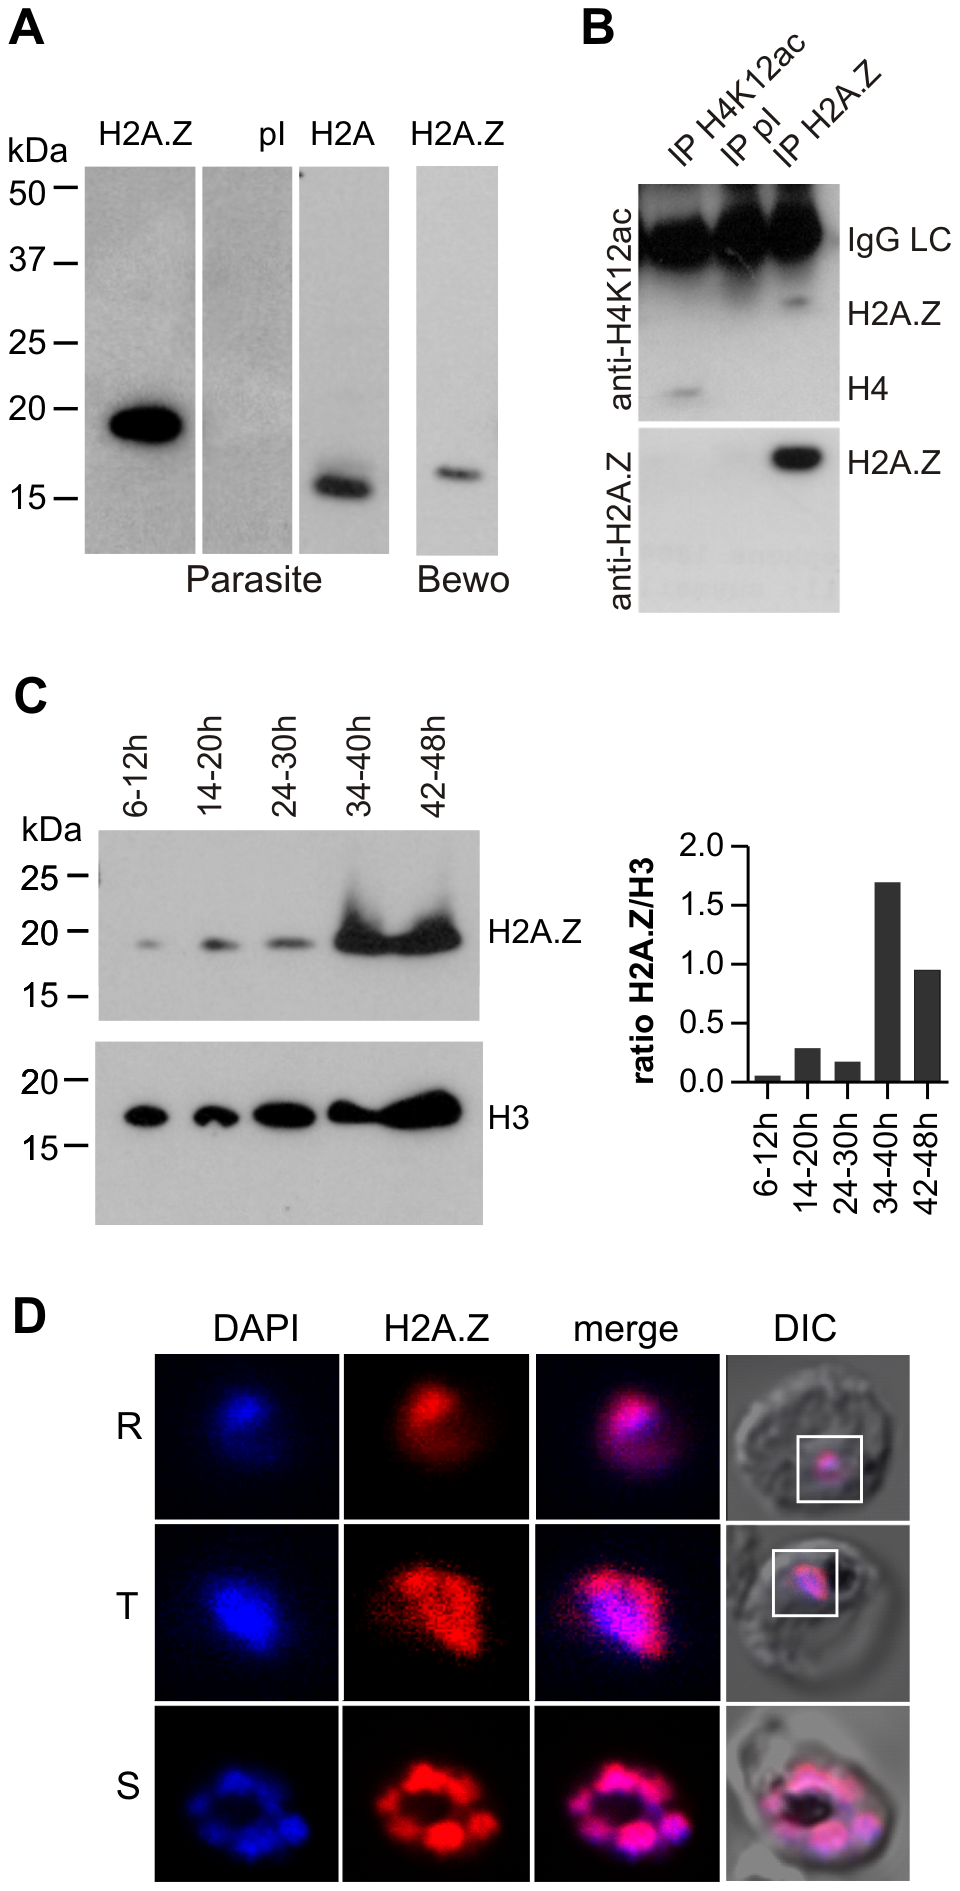 PfH2A.Z is expressed in the nucleus throughout asexual differentiation.